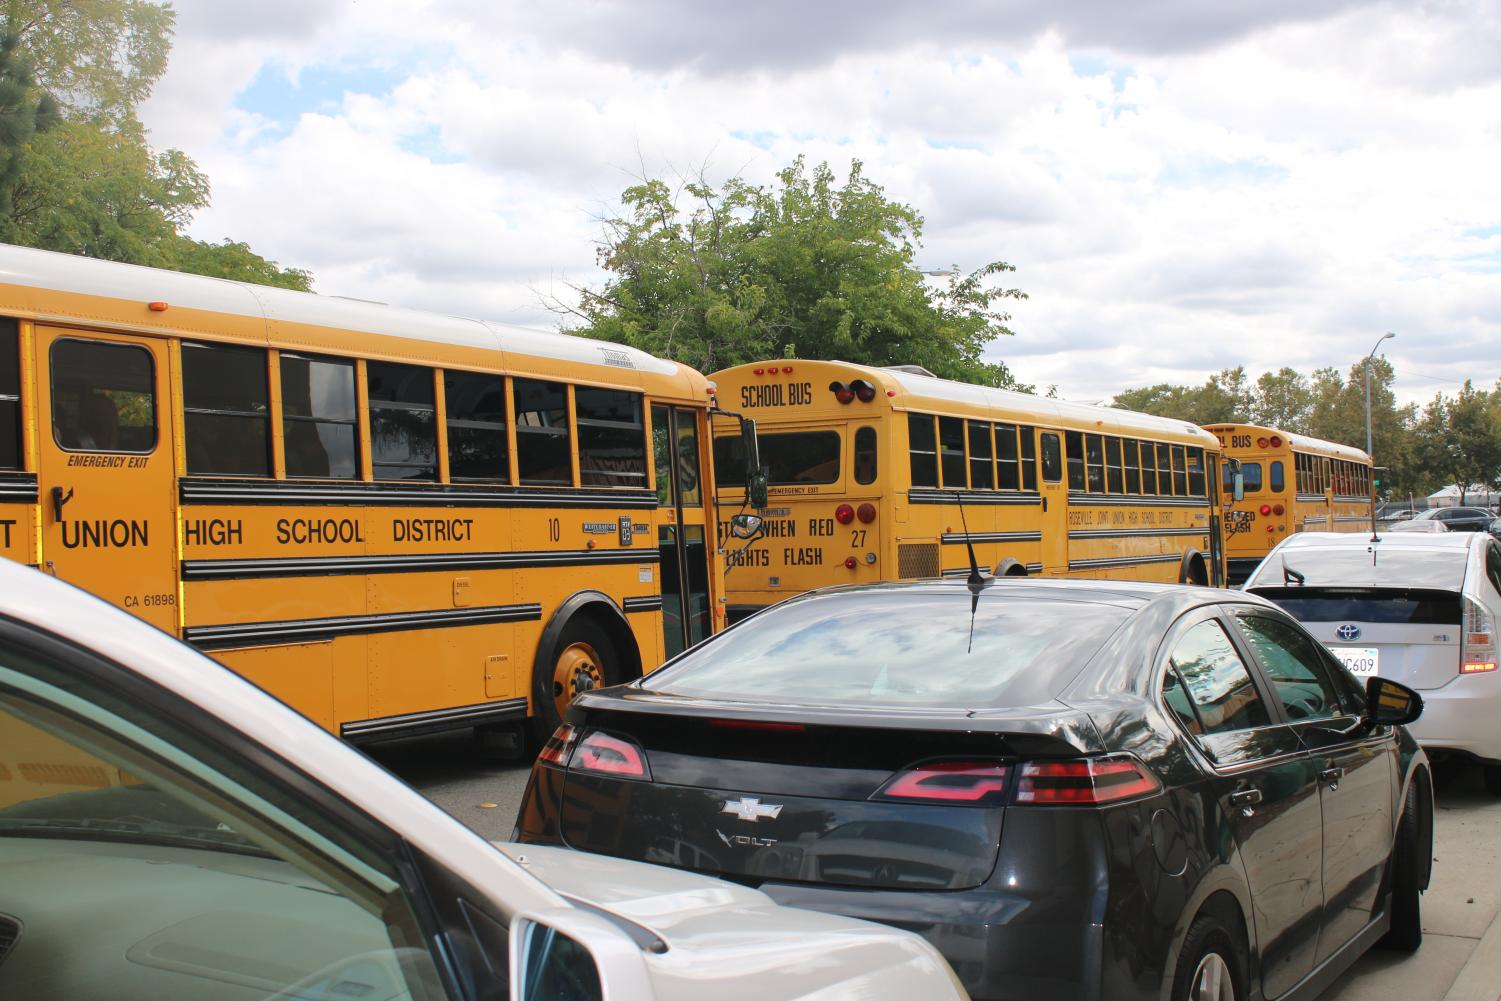 According to director of transportation Julie Guererro, RJUHSD is currently in the process of replacing district bus cameras and hiring more bus drivers.